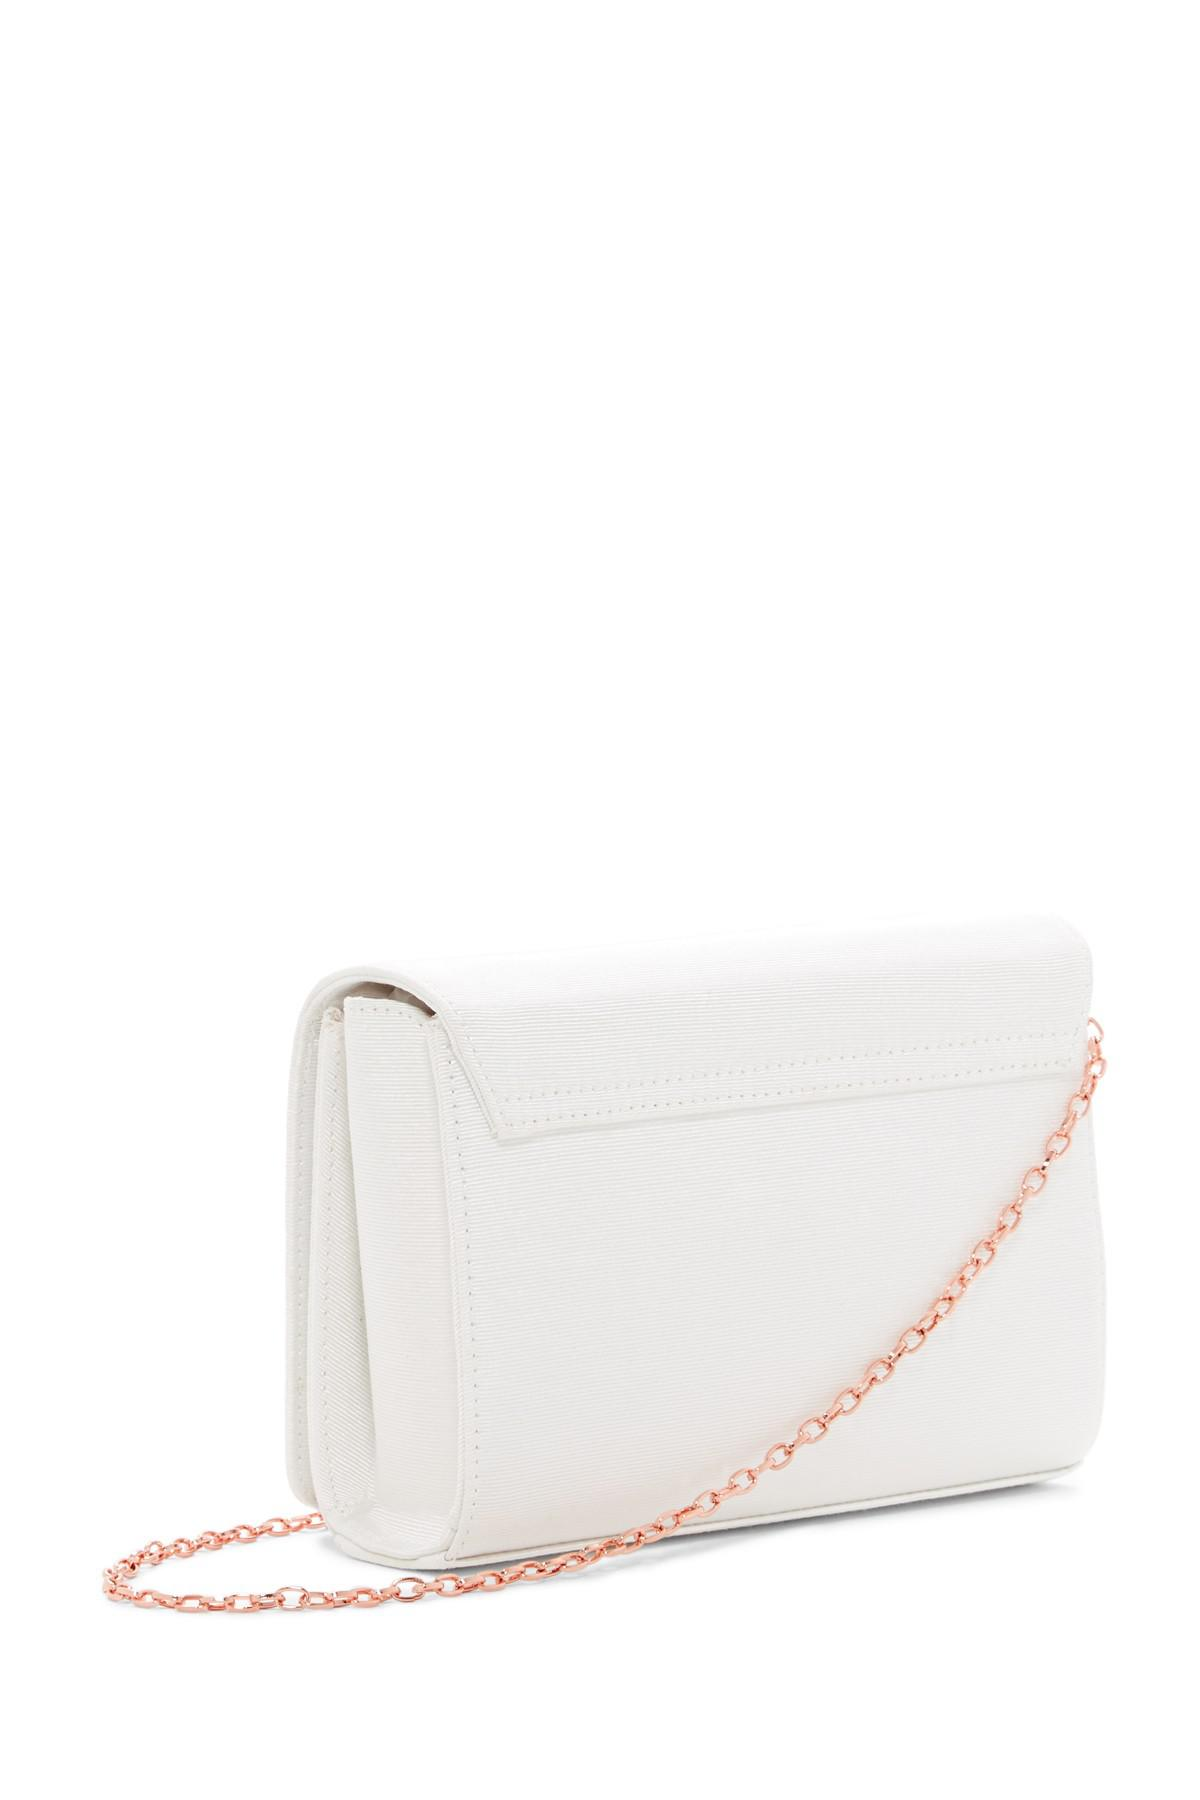 2a5fd75701315 Gallery. Previously sold at  Nordstrom Rack · Women s Metallic Clutch Bags  ...